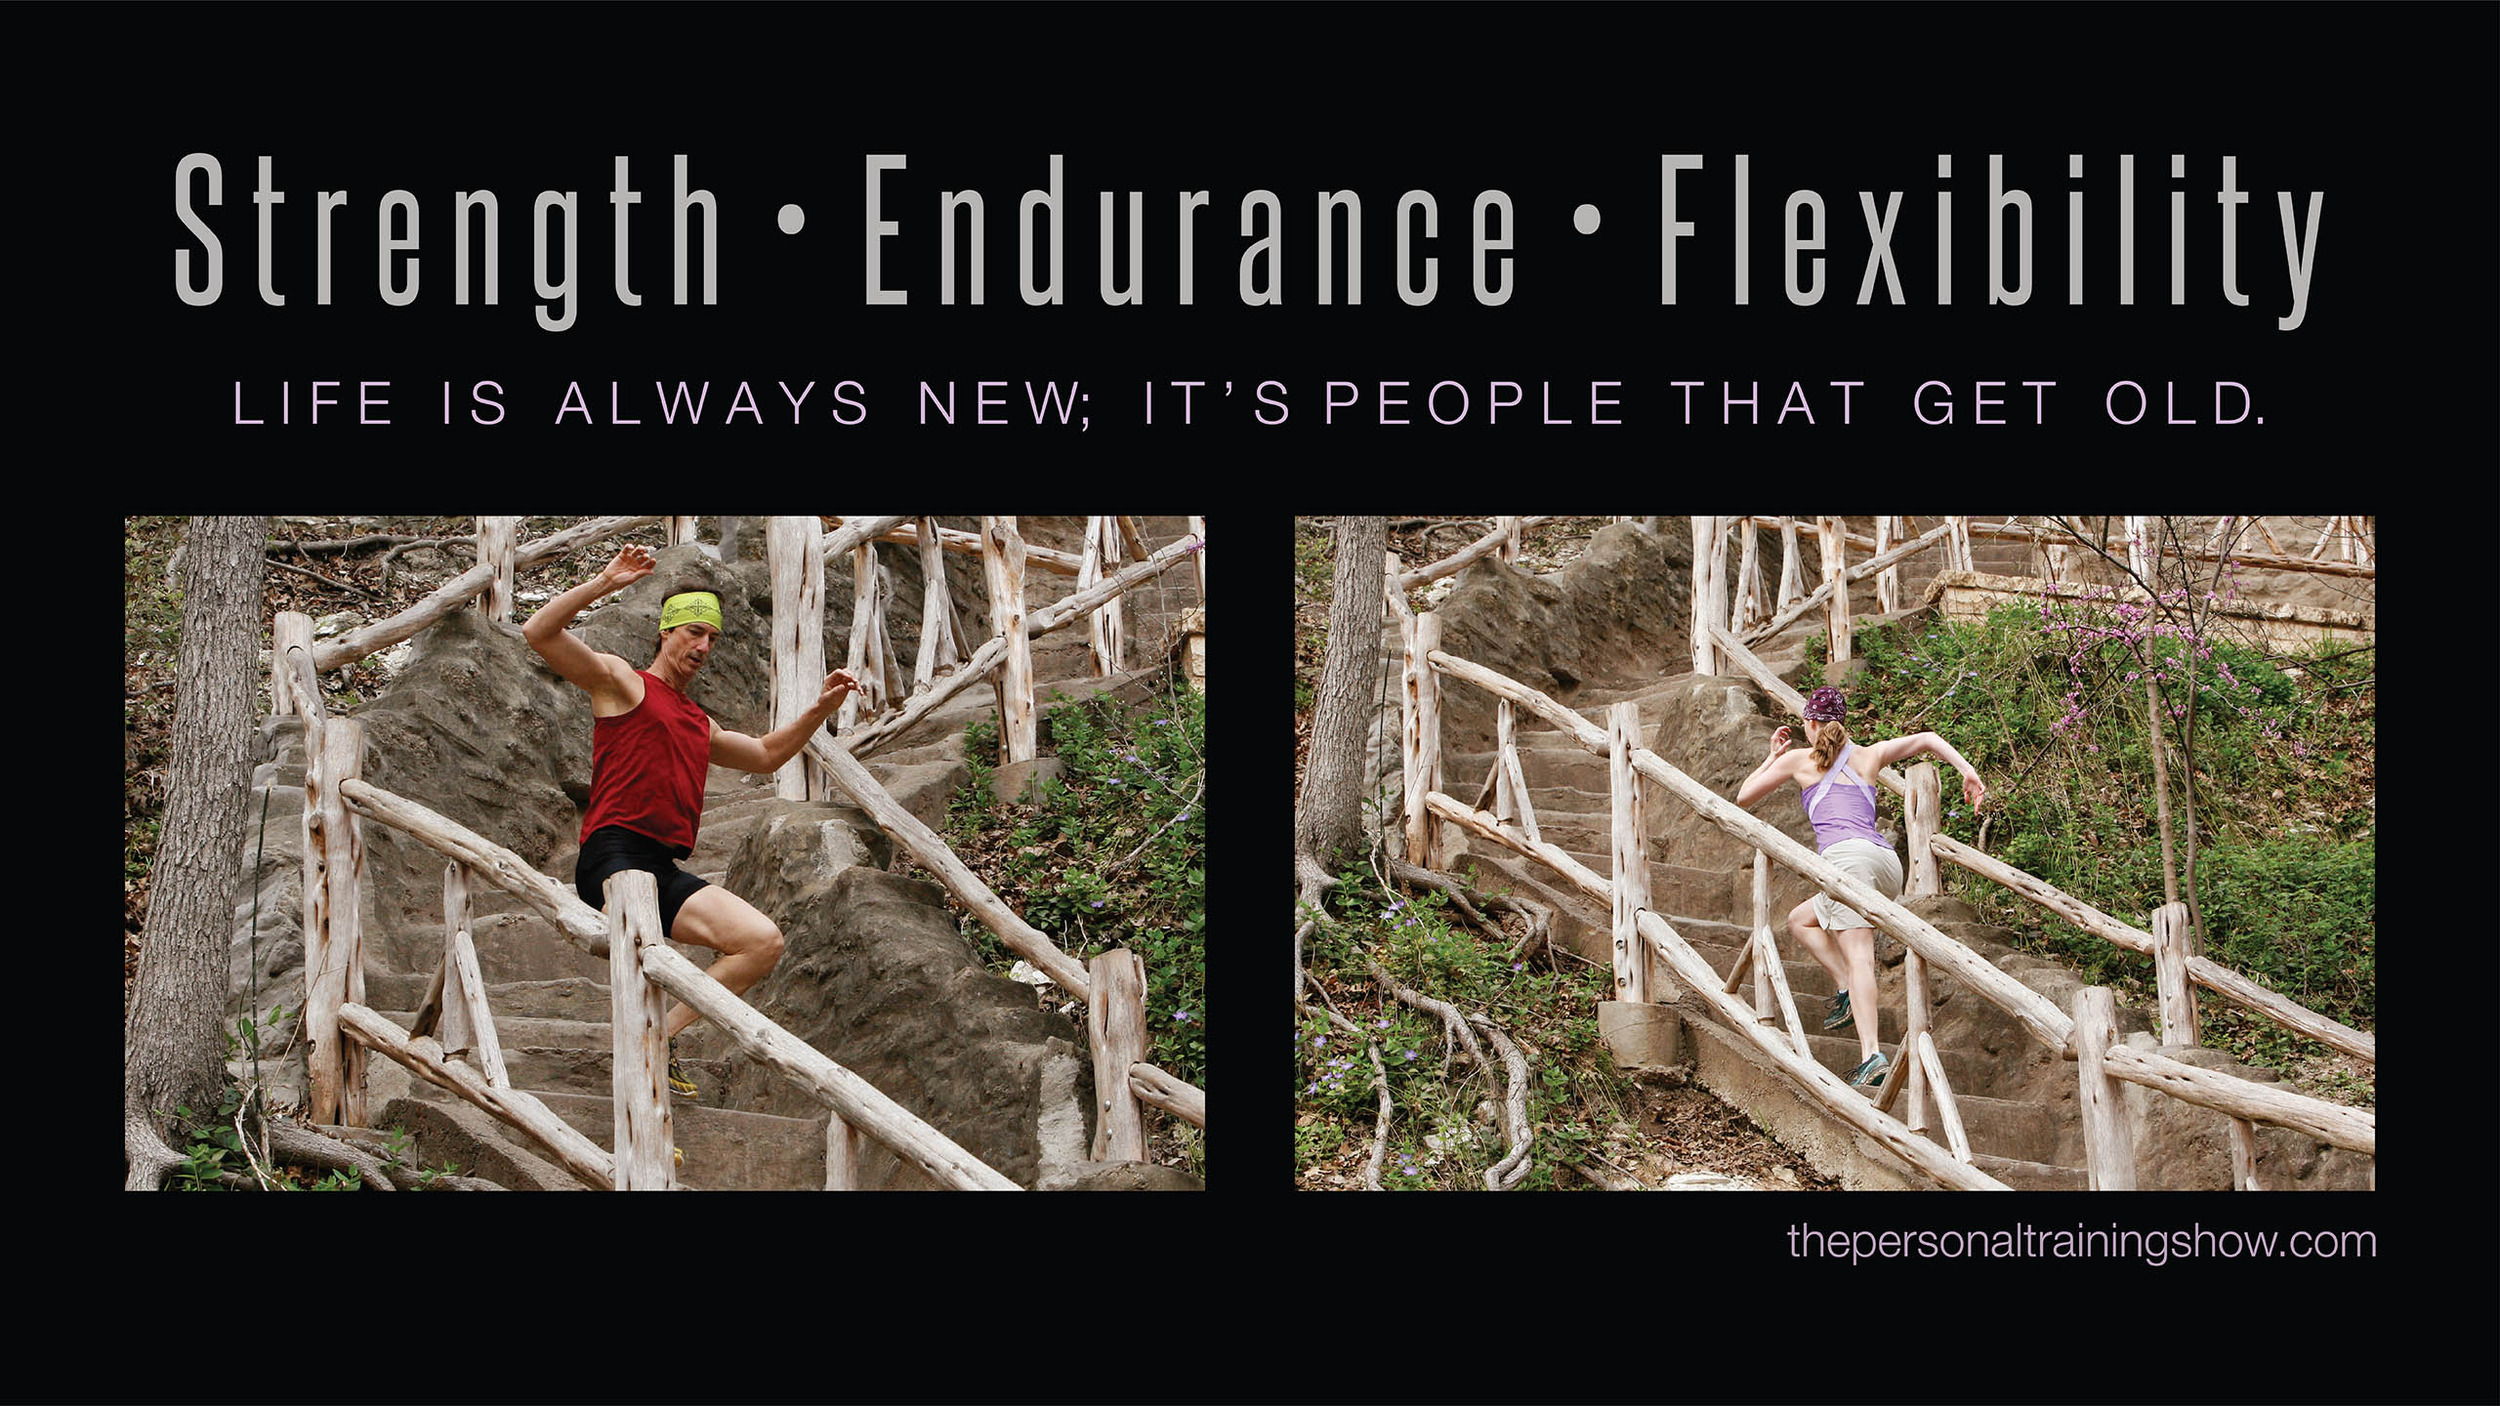 Strength Endurance Flexibility